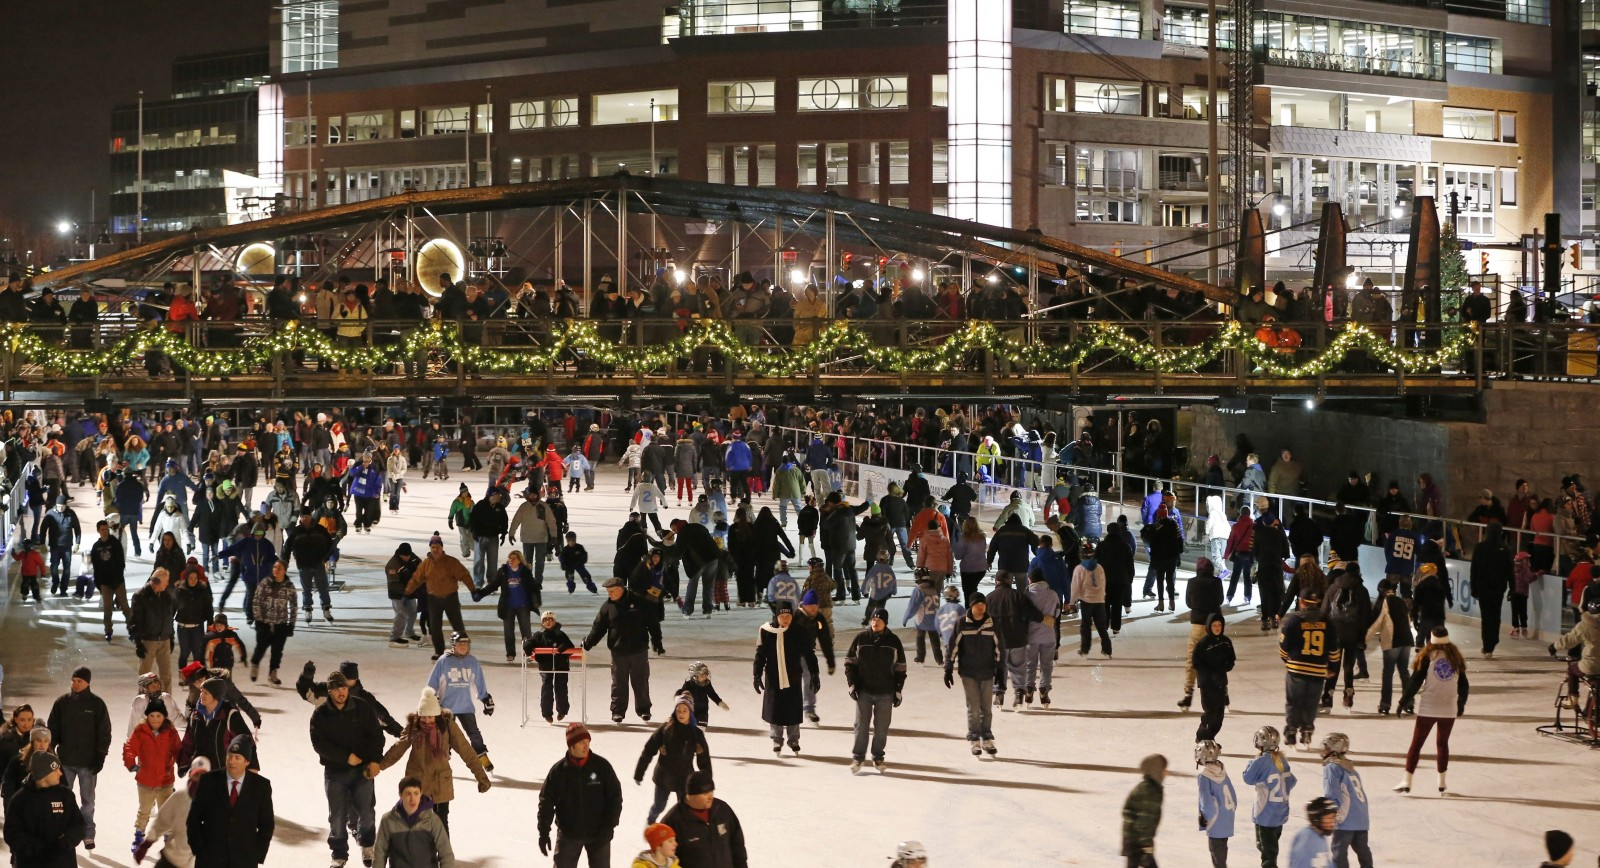 The Ice at Canalside is one of many attractions in Western New York. (Derek Gee/News file photo)